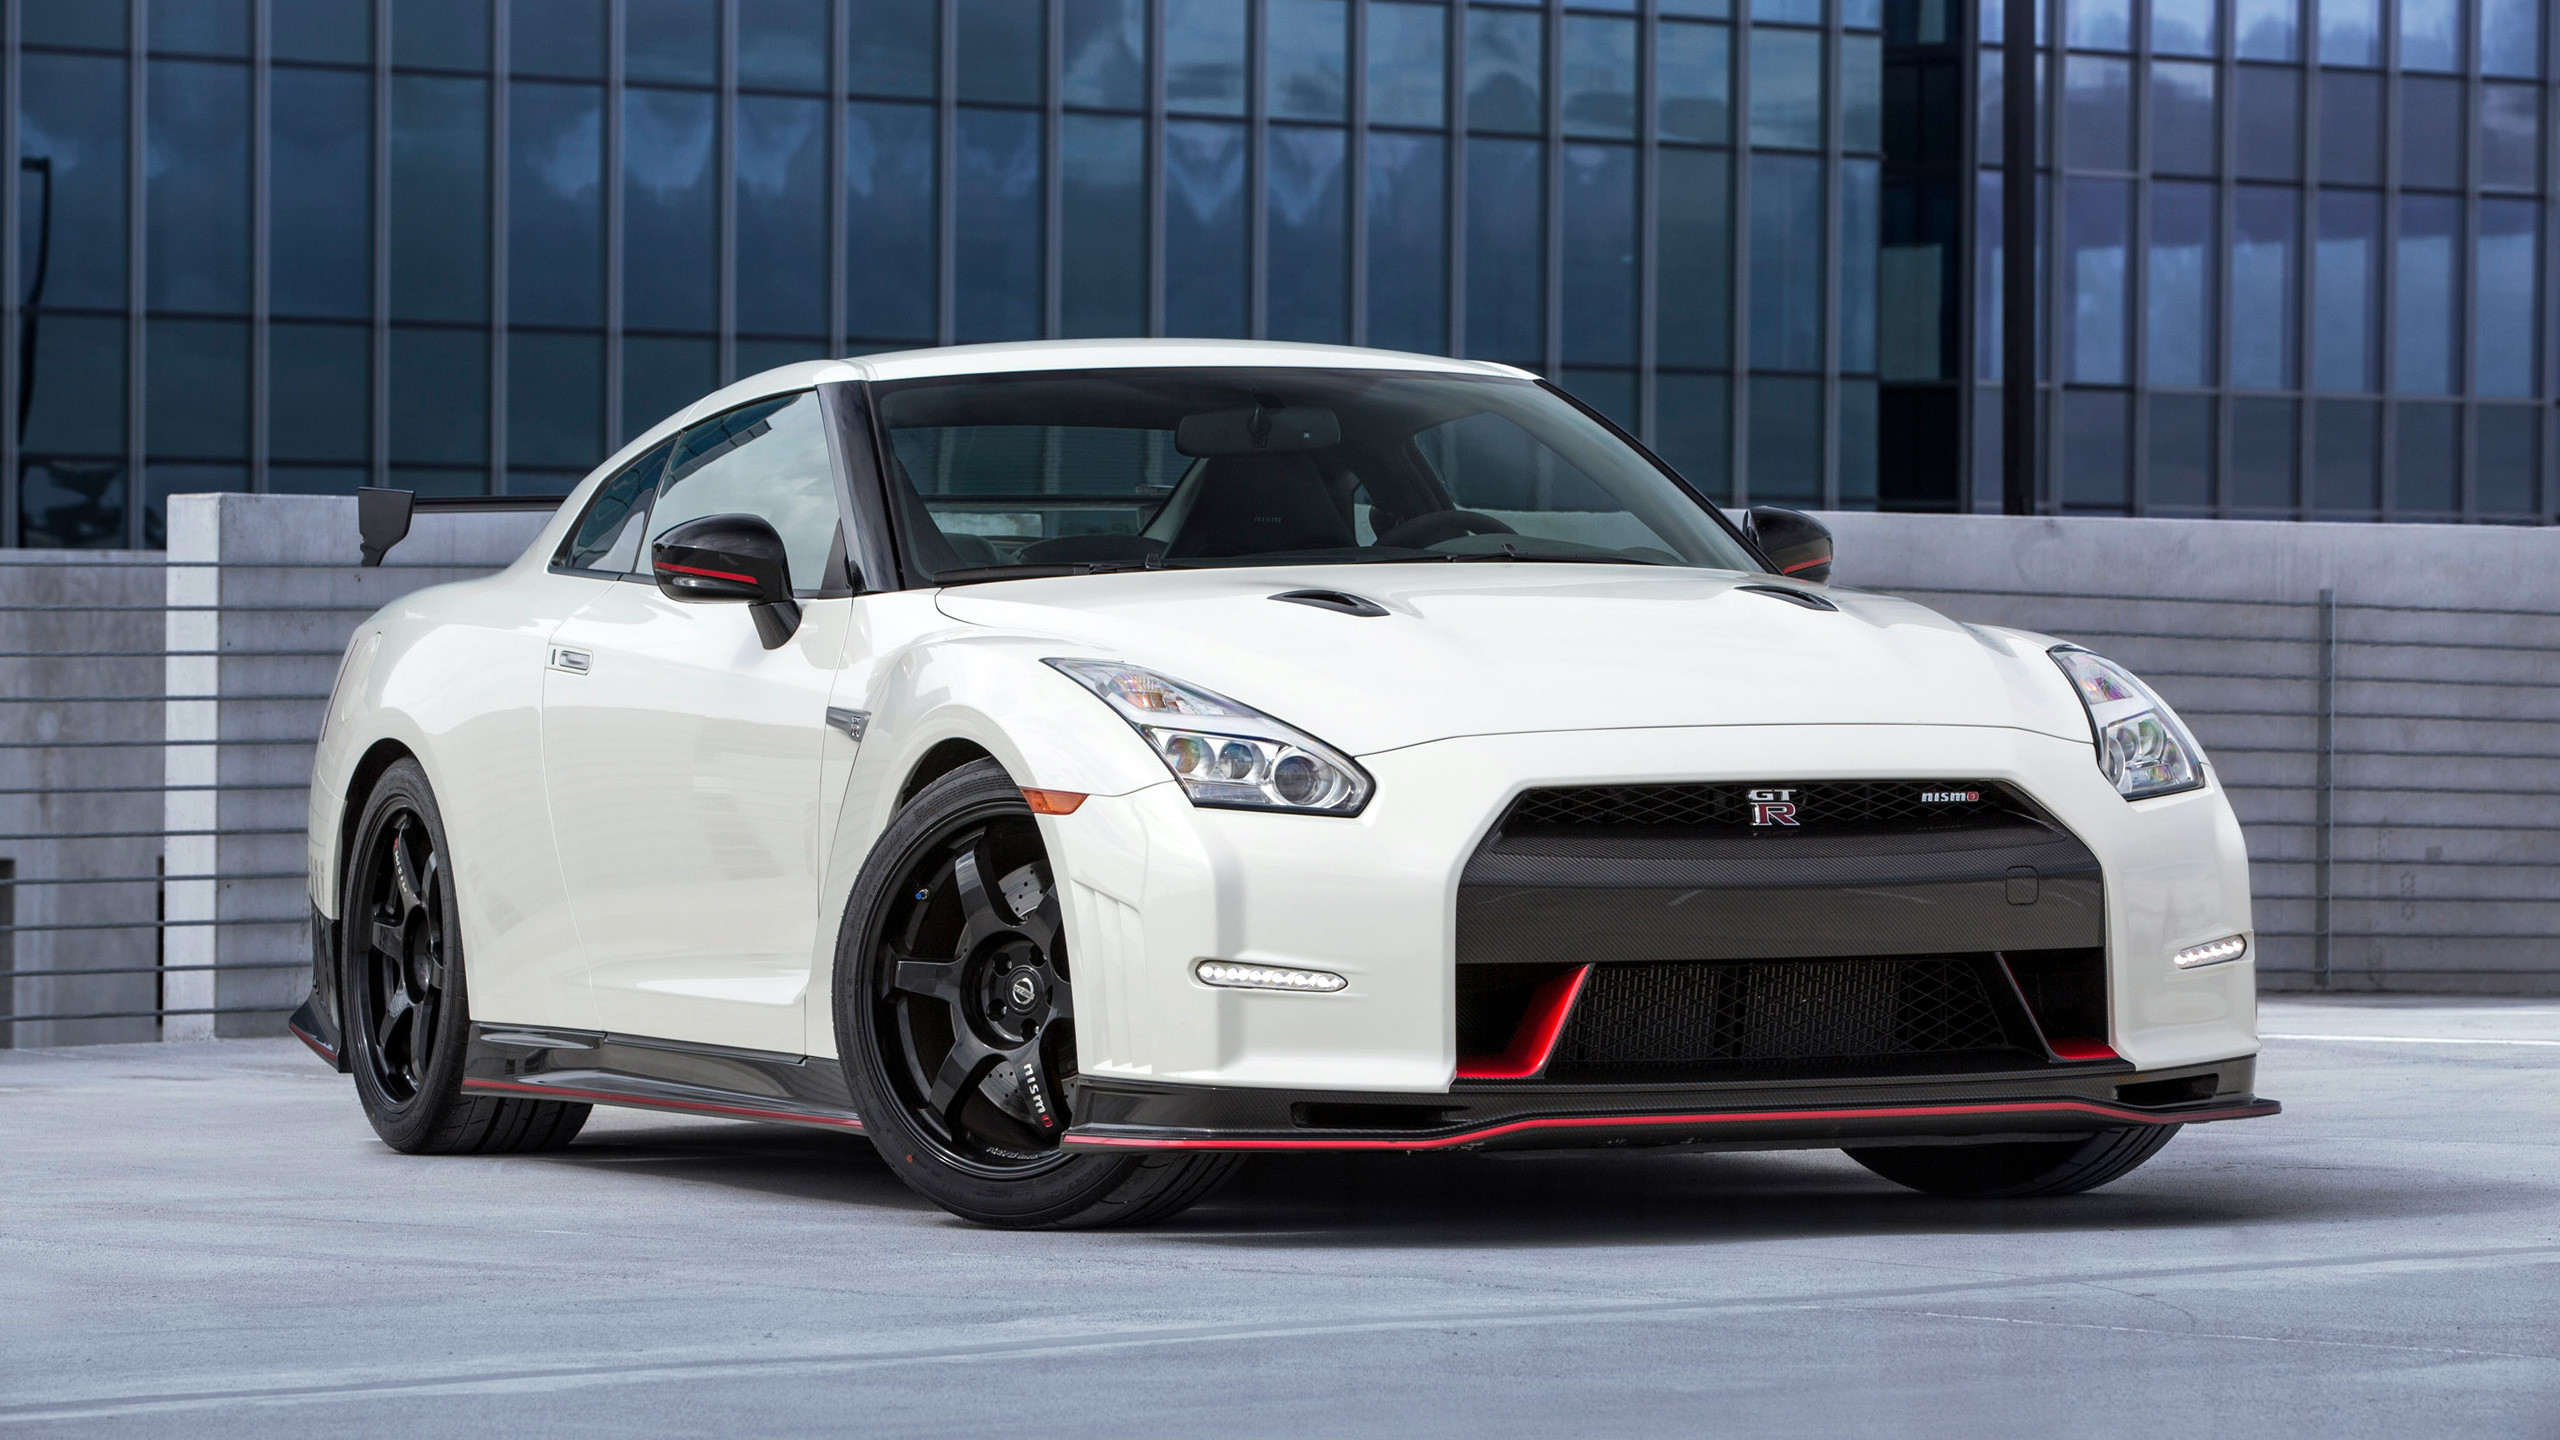 Res: 2560x1440, Nissan GT-R Nismo Wallpapers